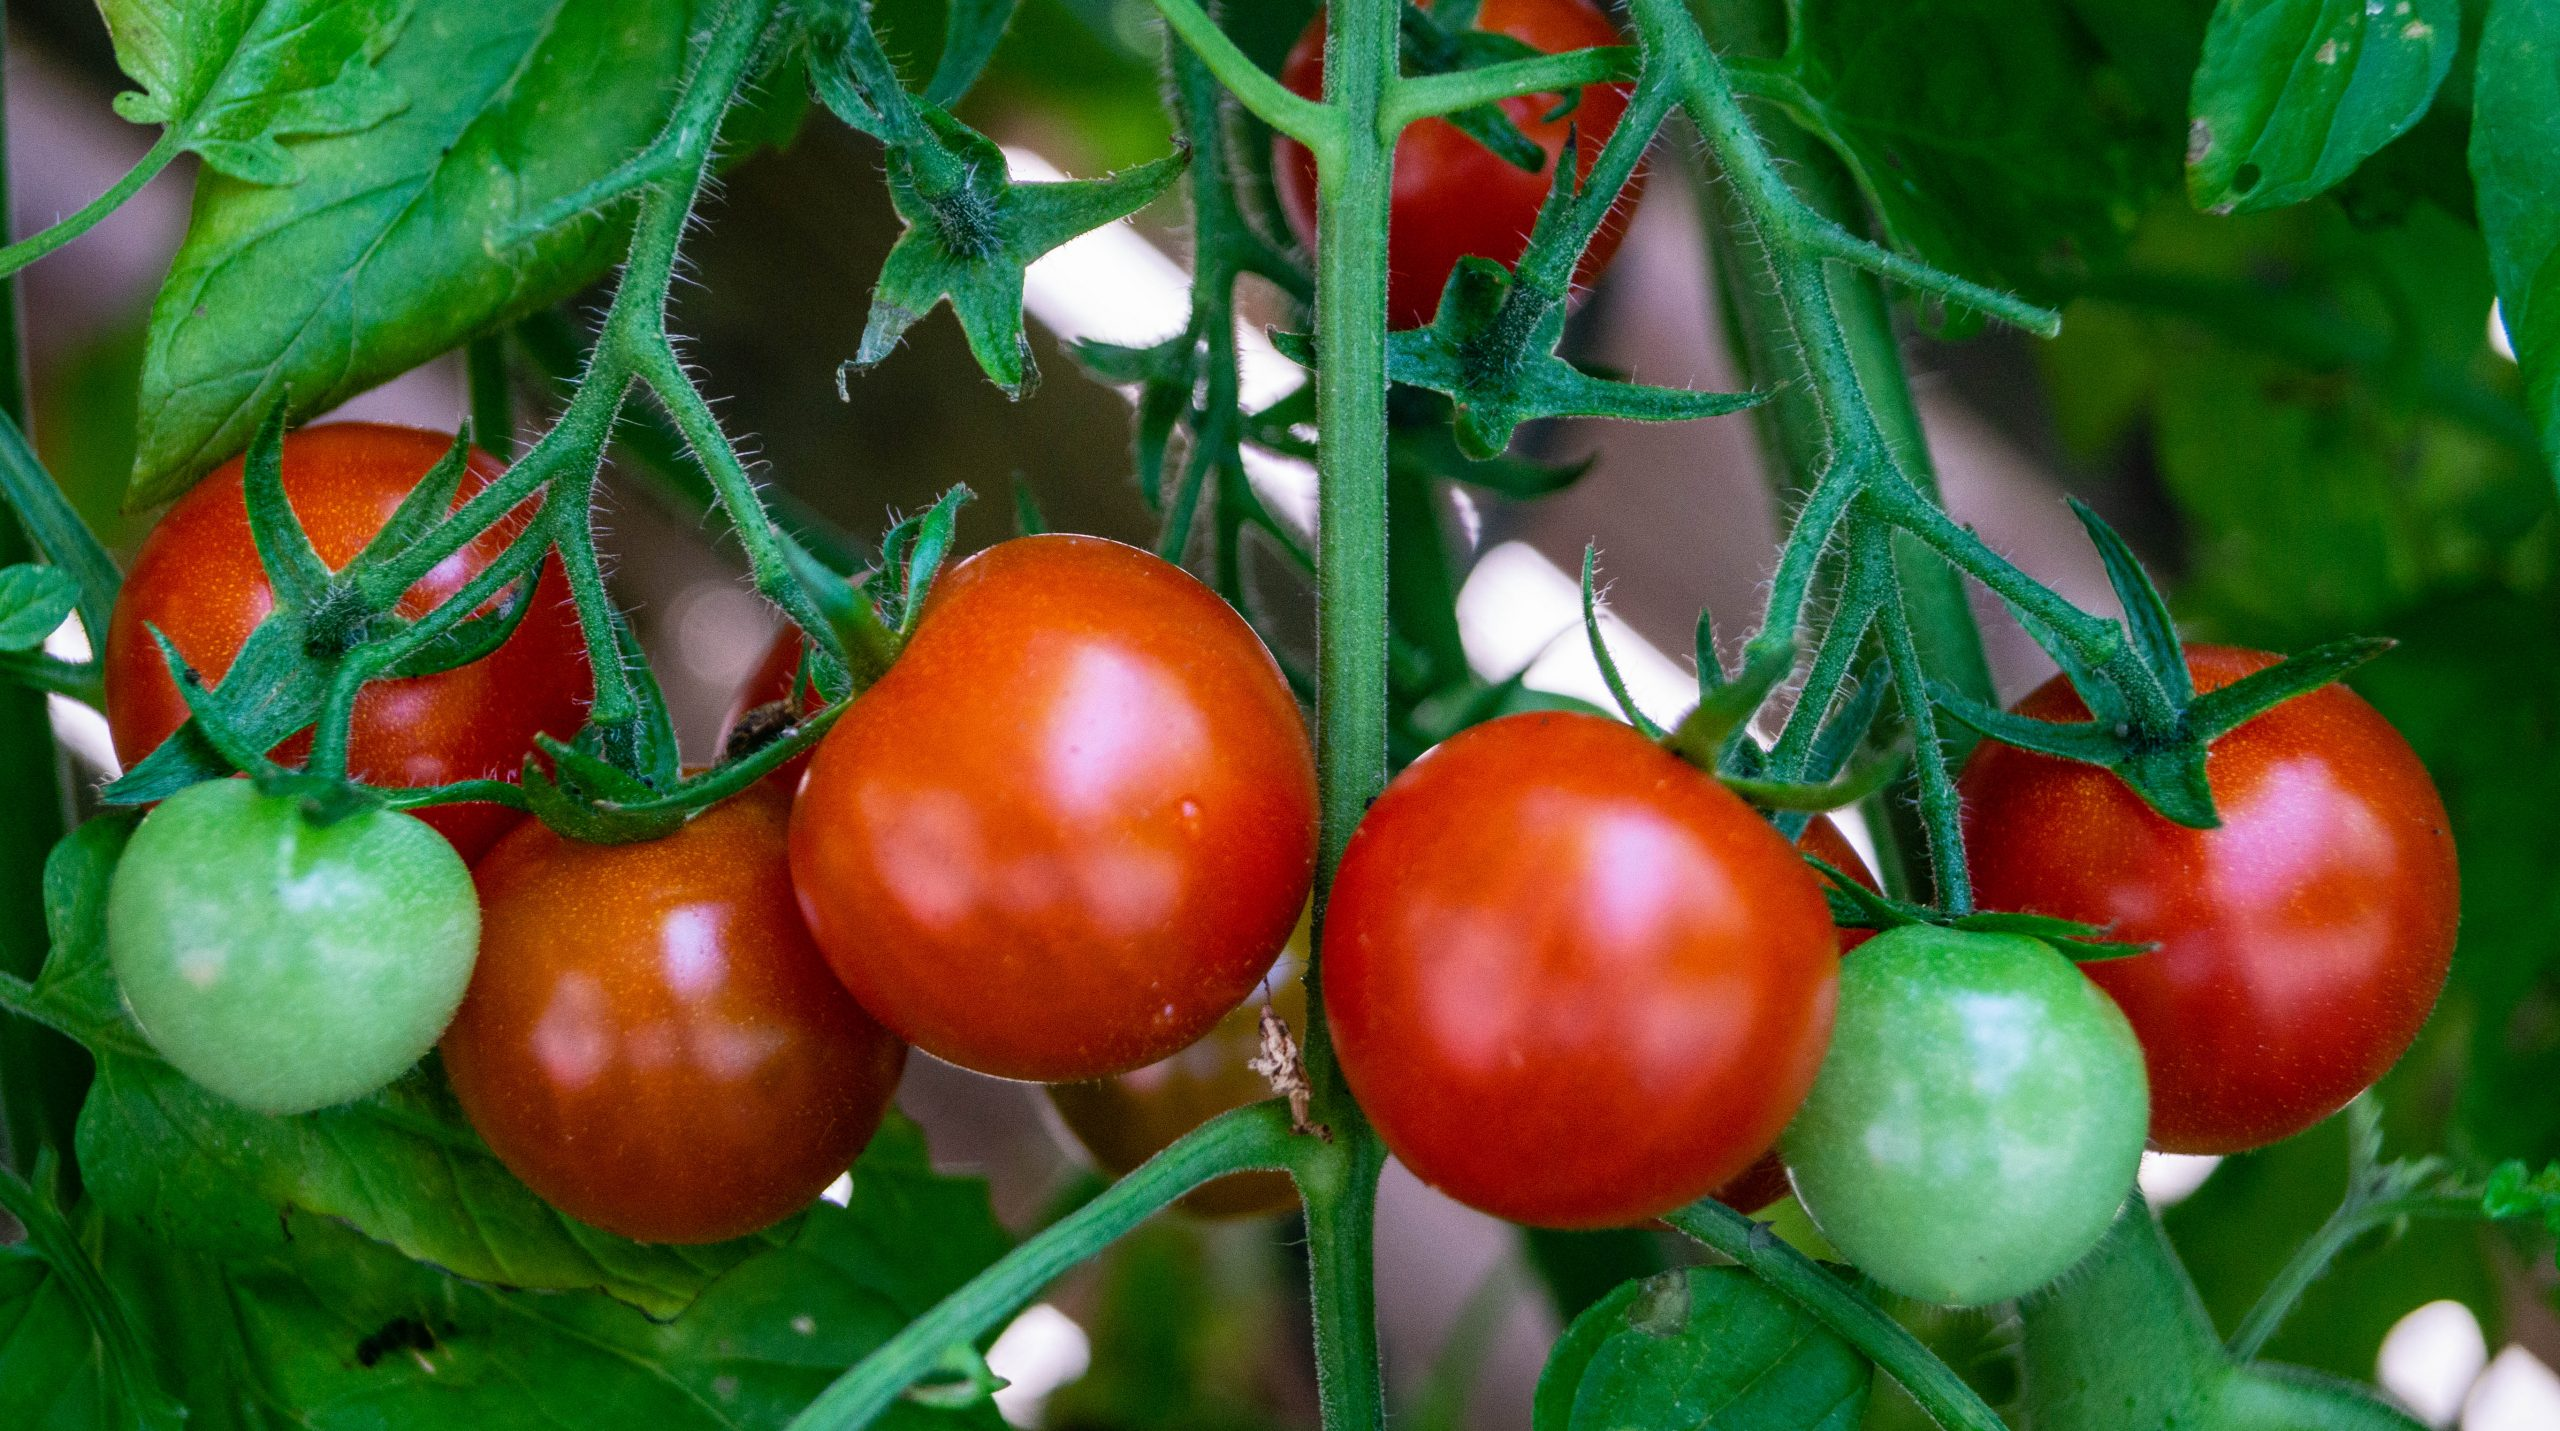 Red and green tomatoes are shown growing on a green vine